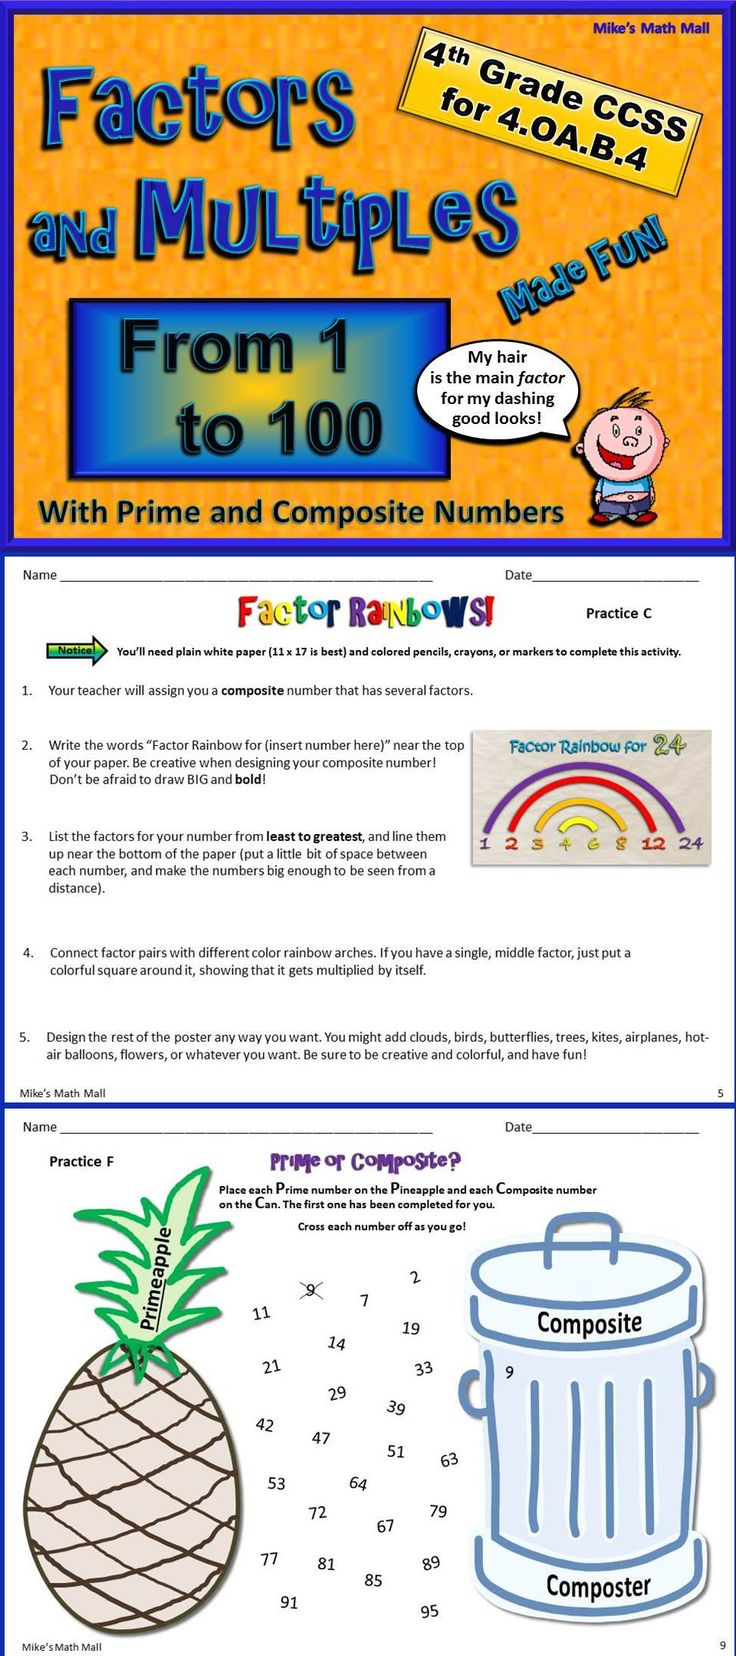 This is an all-inclusive bundled unit for Factors and Multiples from 1 to 100 (CCSS 4.OA.B.4). Included in the bundled unit: Fun, interactive PowerPoint, 5 practice pages, 2 fun activities, assessments, flashcards (1 to 100 - factors, multiples, prime, and composite), and more! Mike's Math Mall - $